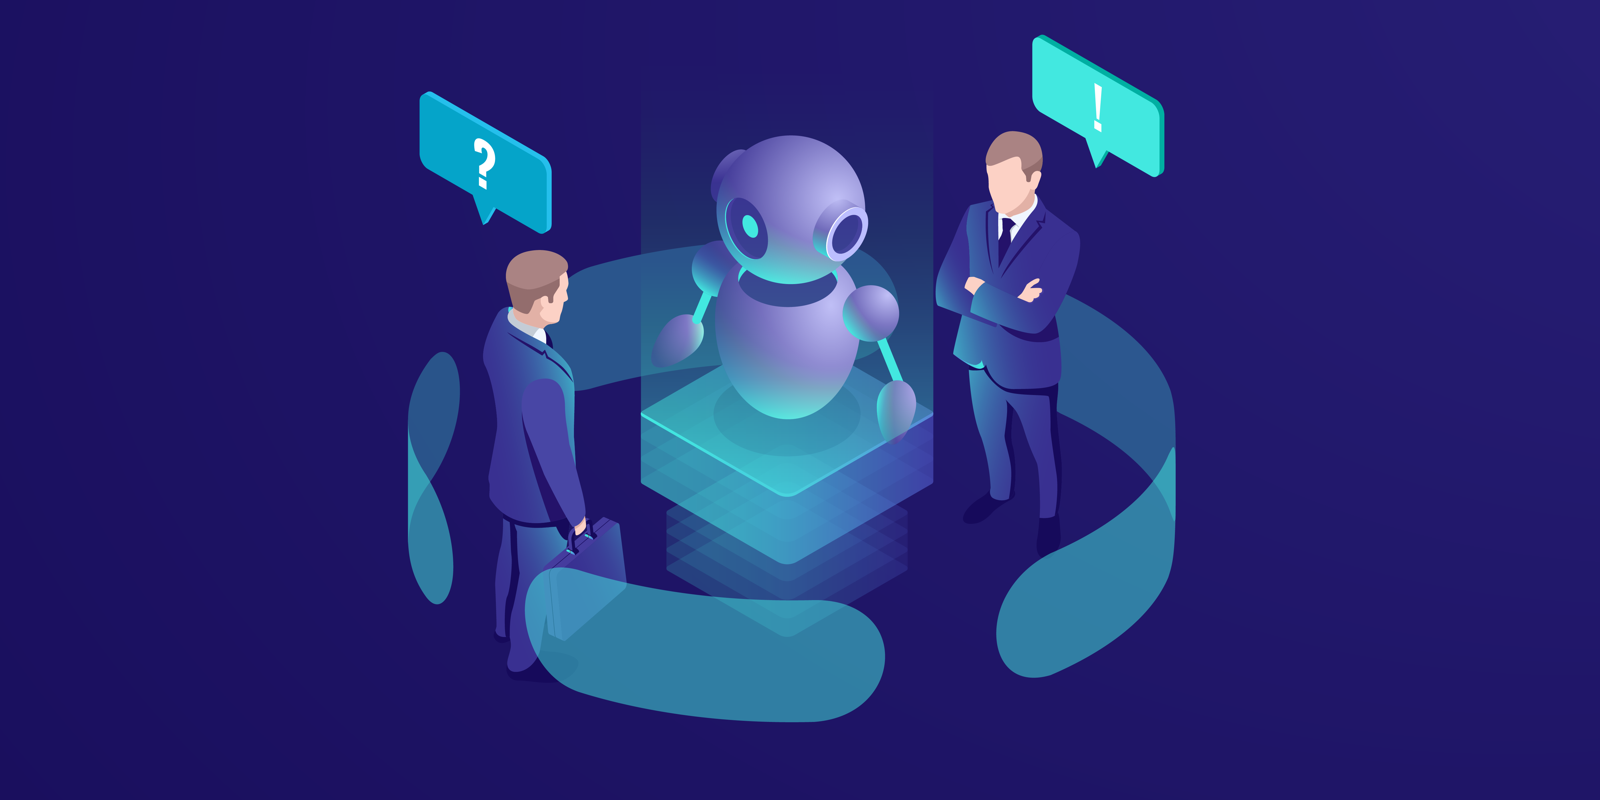 Social media trends in 2018 - AI and chatbots